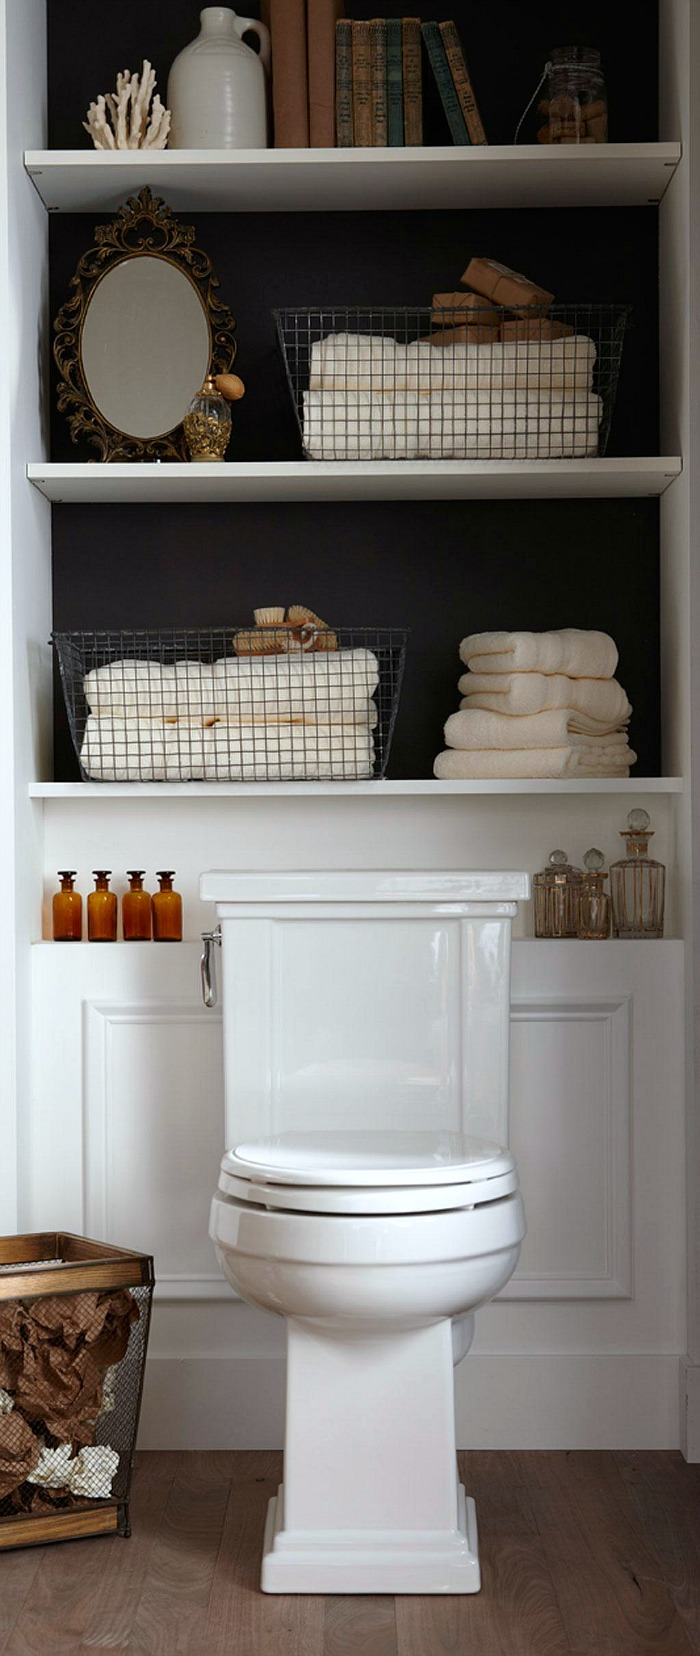 Adding built-in or freestanding shelving behind the toilet is a great way to add some extra storage in a small bathroom!